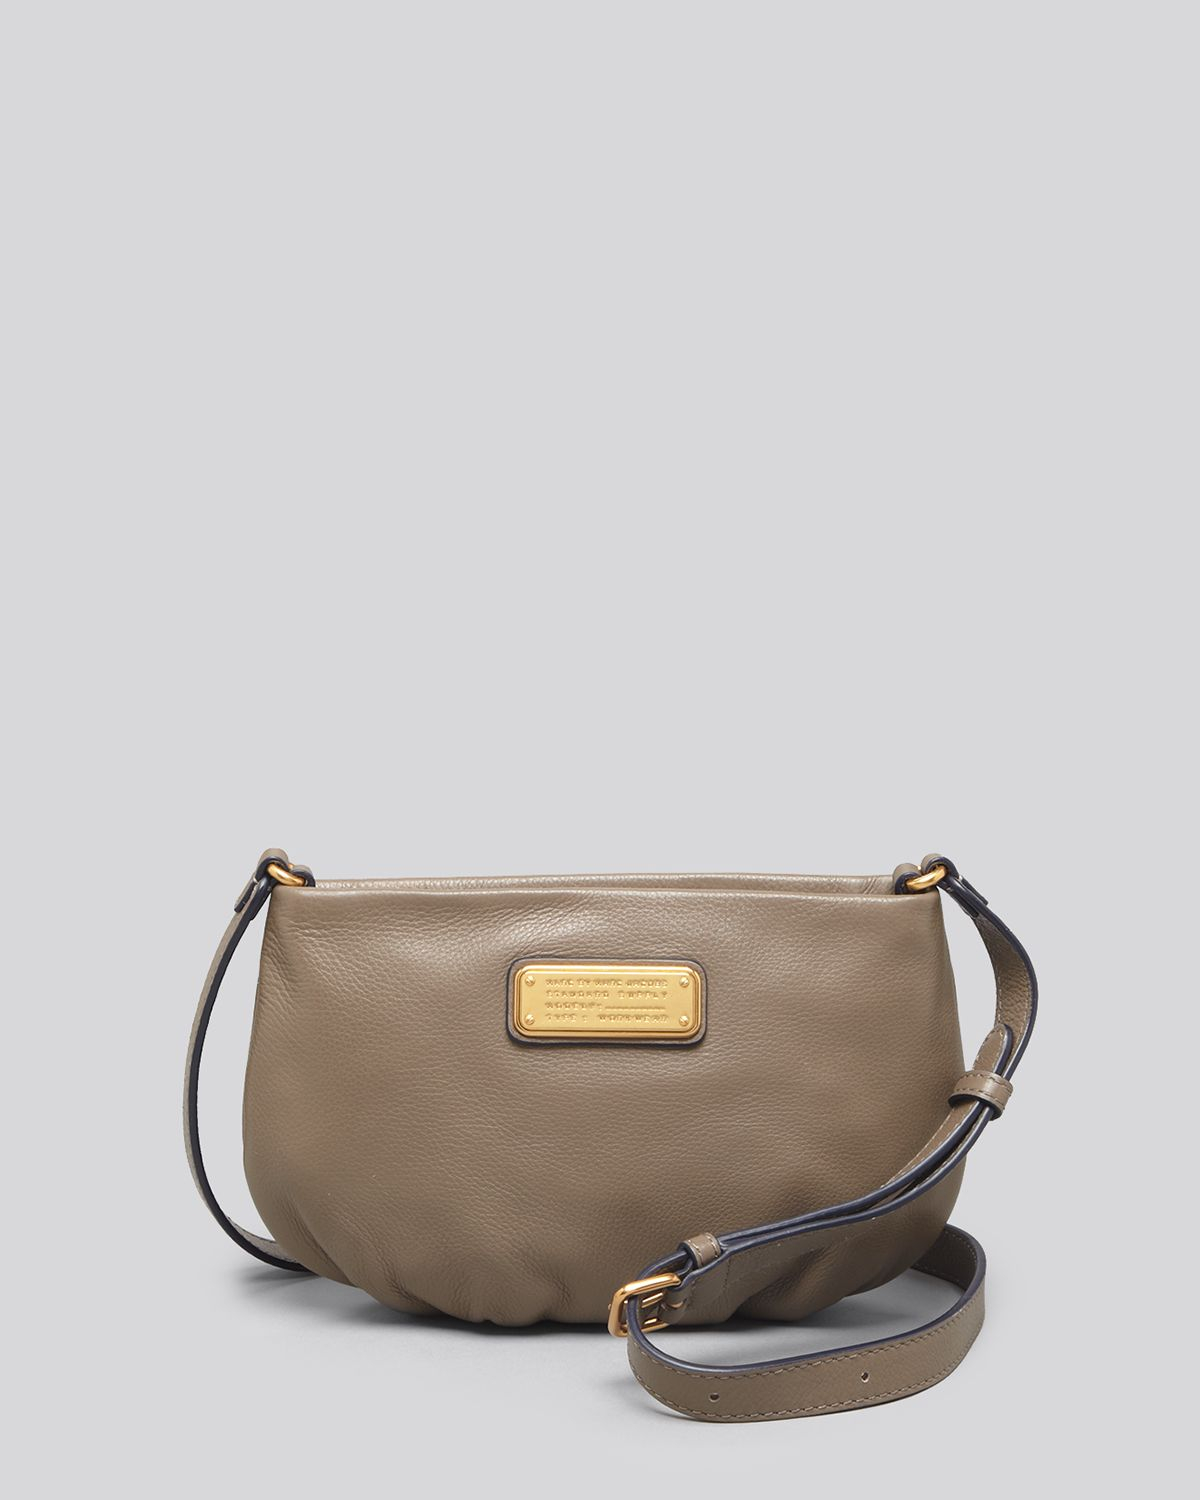 marc by marc jacobs crossbody new q percy in brown puma taupe lyst. Black Bedroom Furniture Sets. Home Design Ideas